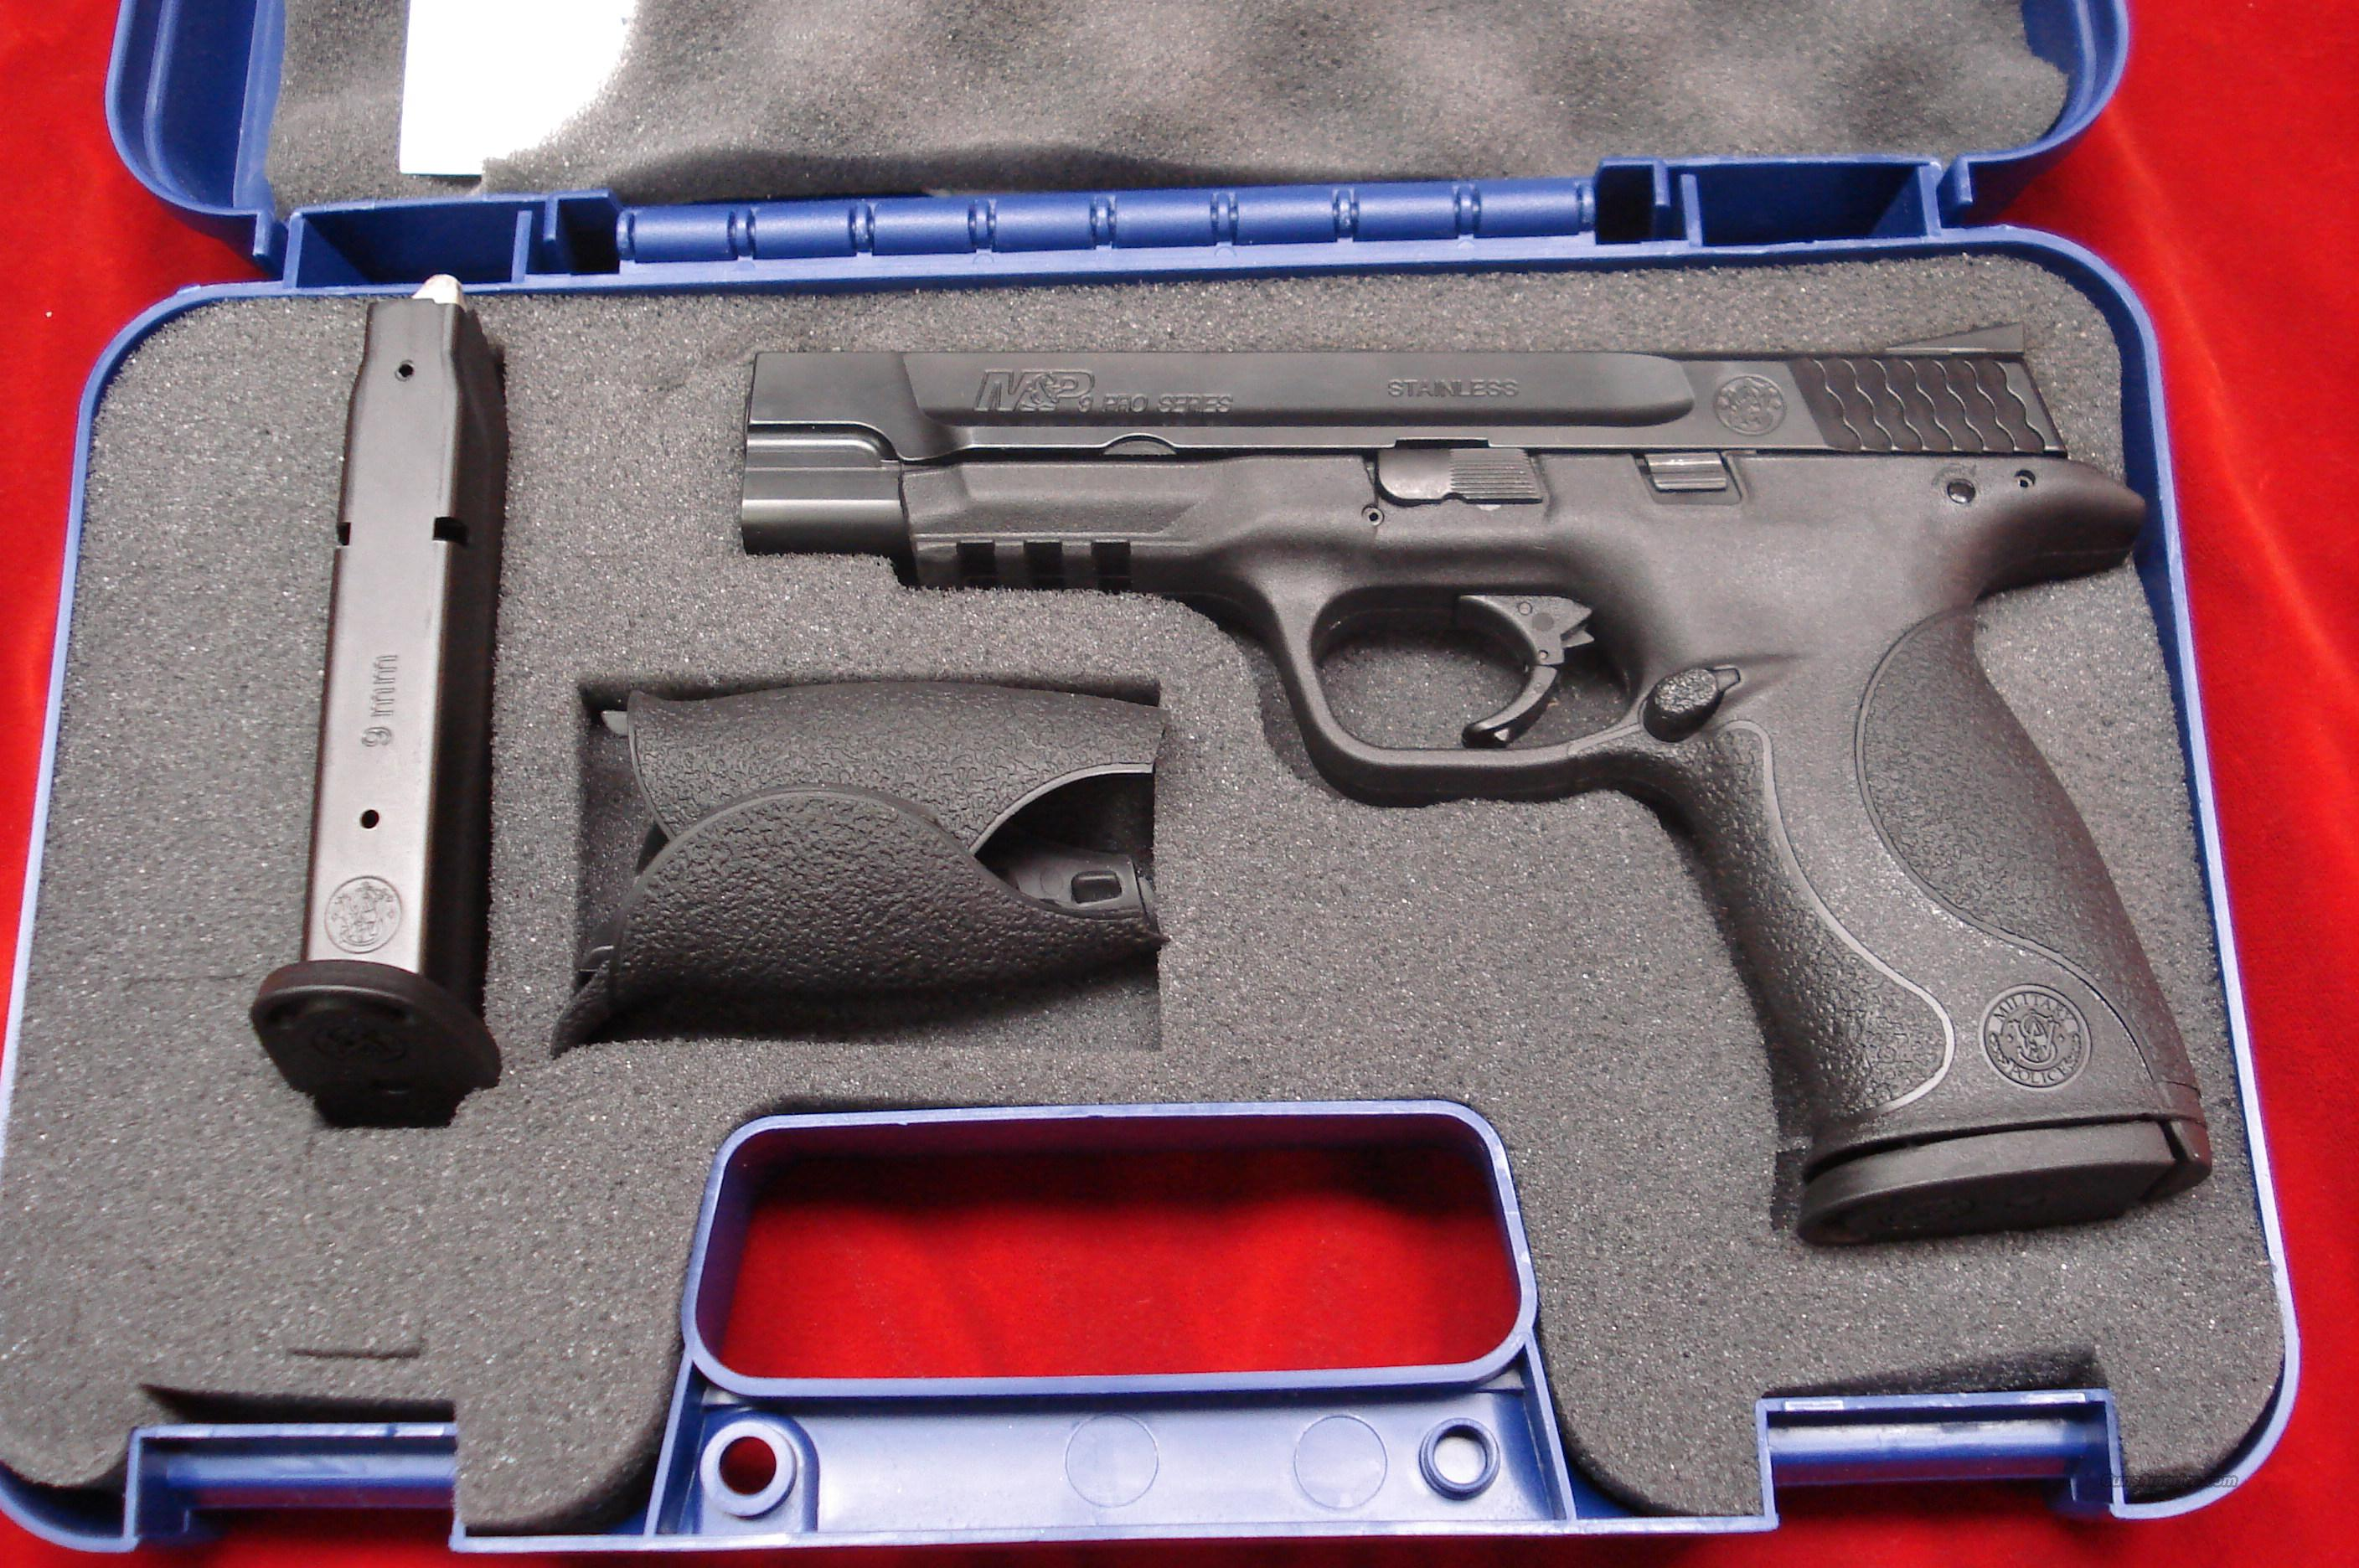 SMITH AND WESSON M&P PRO SERIES 9MM HIGH/CAP LNIB   Guns > Pistols > Smith & Wesson Pistols - Autos > Polymer Frame